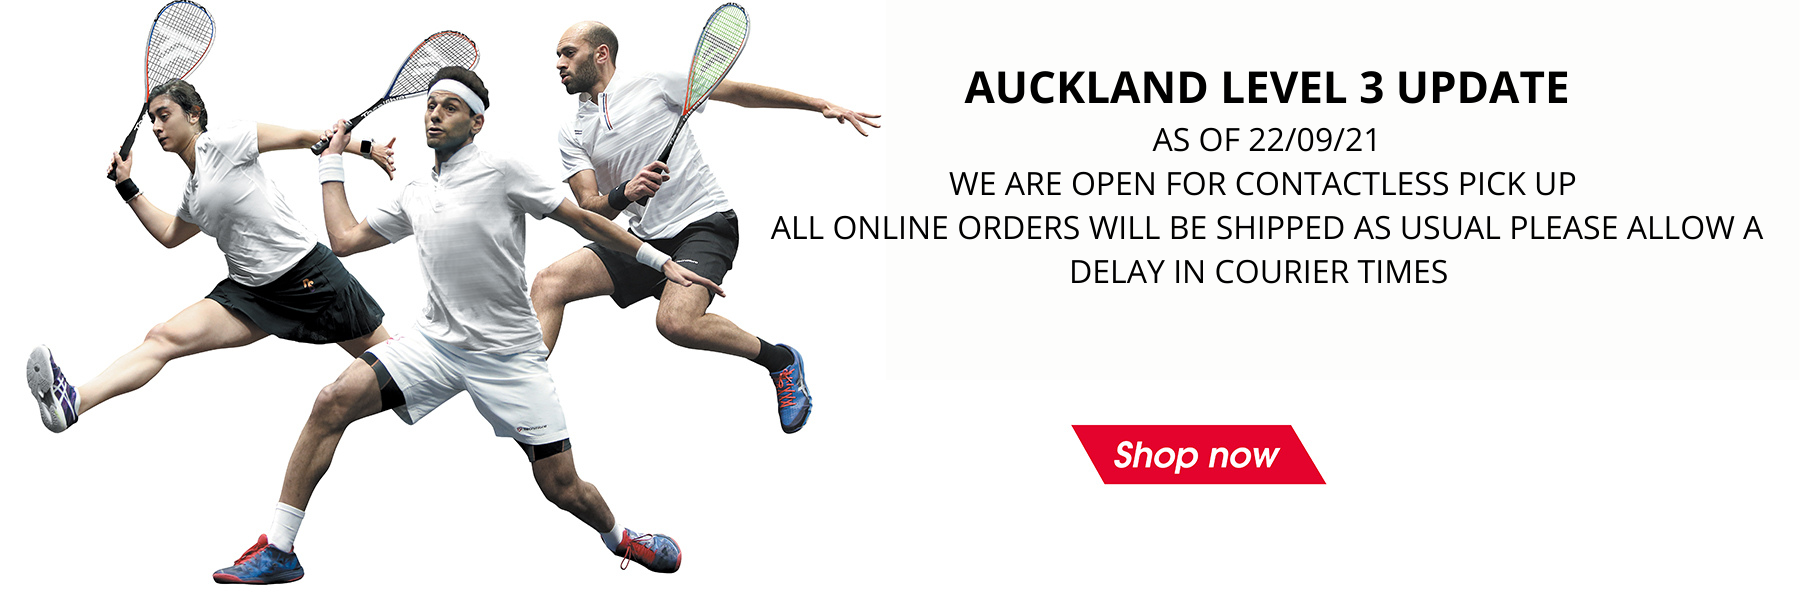 AUCKLAND LEVEL 3 UPDATE WE ARE CURRENTLY OPEN FOR CONTACTLESS PICK UP ALL ONLINE ORDERS WILL BE SHIPPED AS USUAL PLEASE ALLOW A DELAY IN COURIER TIMES